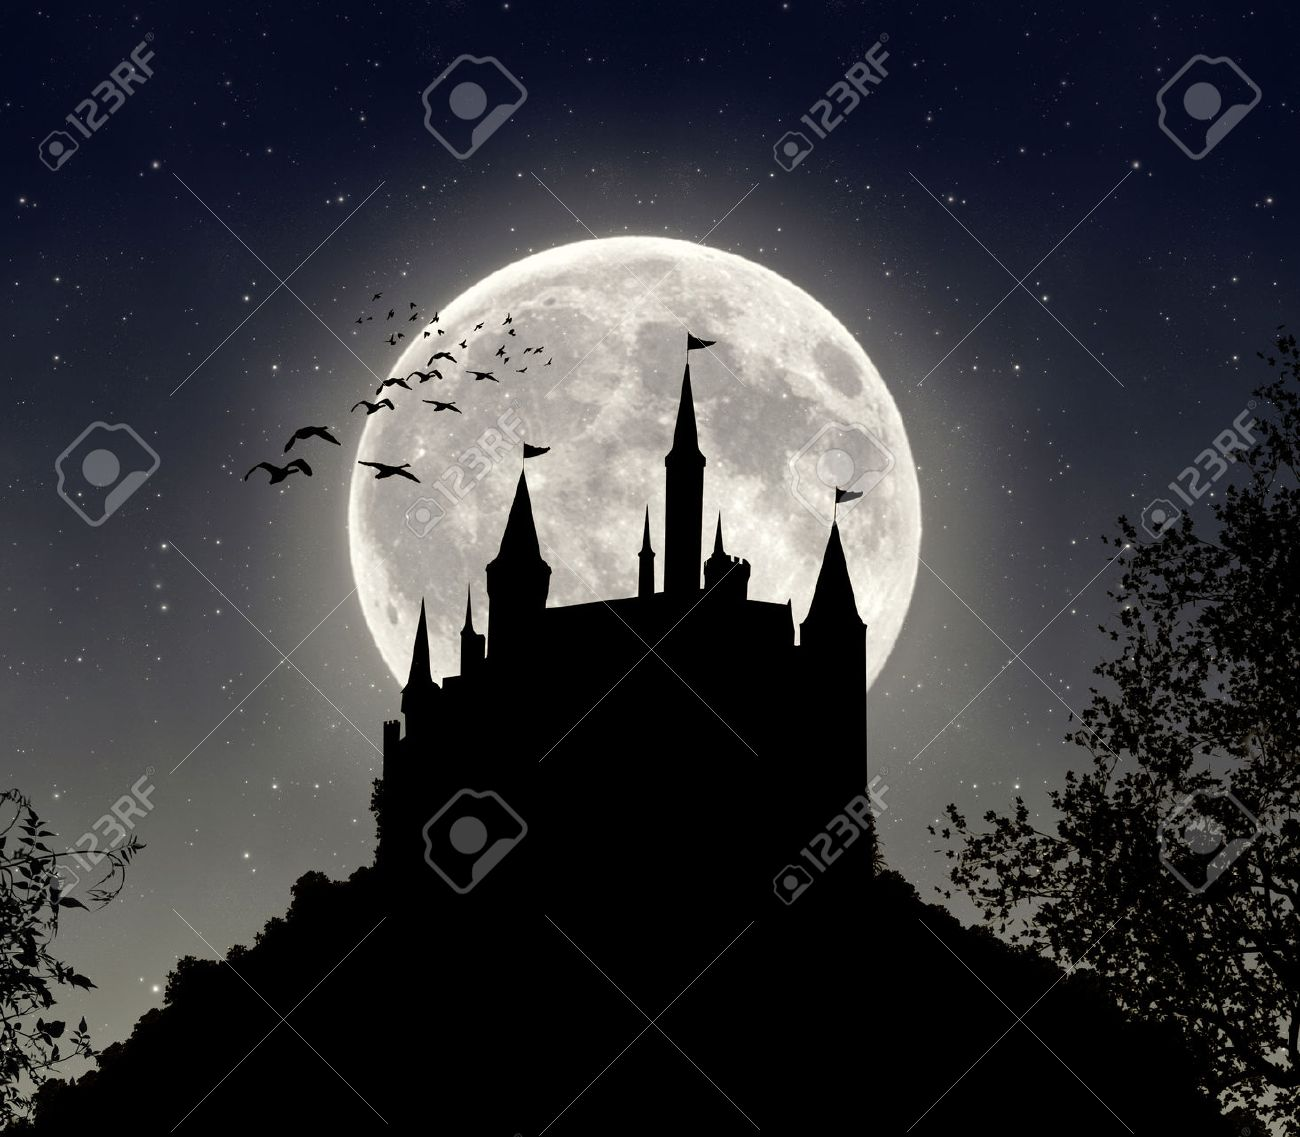 The shadow of a castle in a dark night with big full moon - 28919282